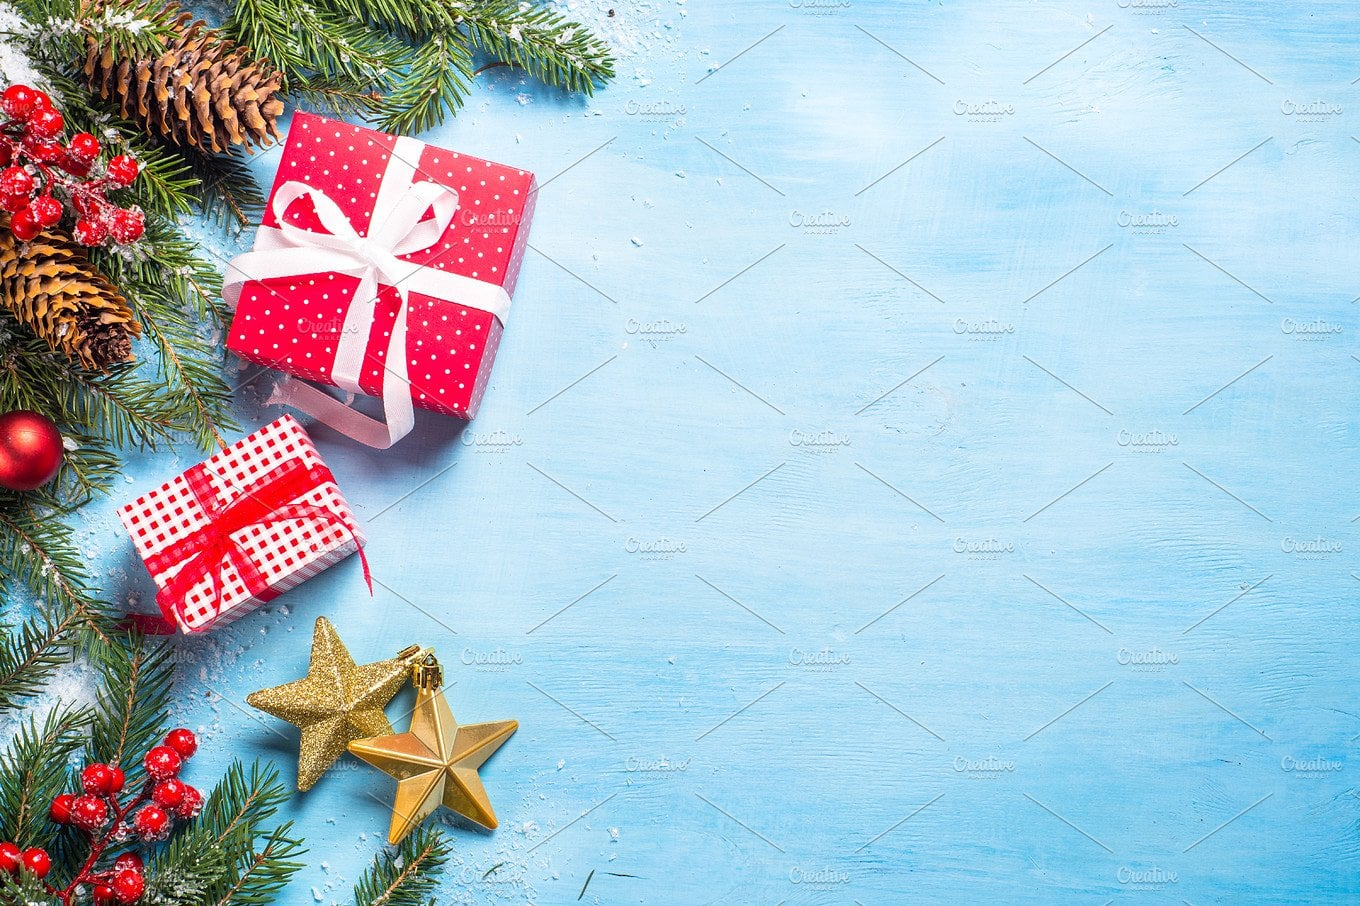 Christmas Backgrounds.Free Download Christmas Backgrounds For Desktop Powerpoint